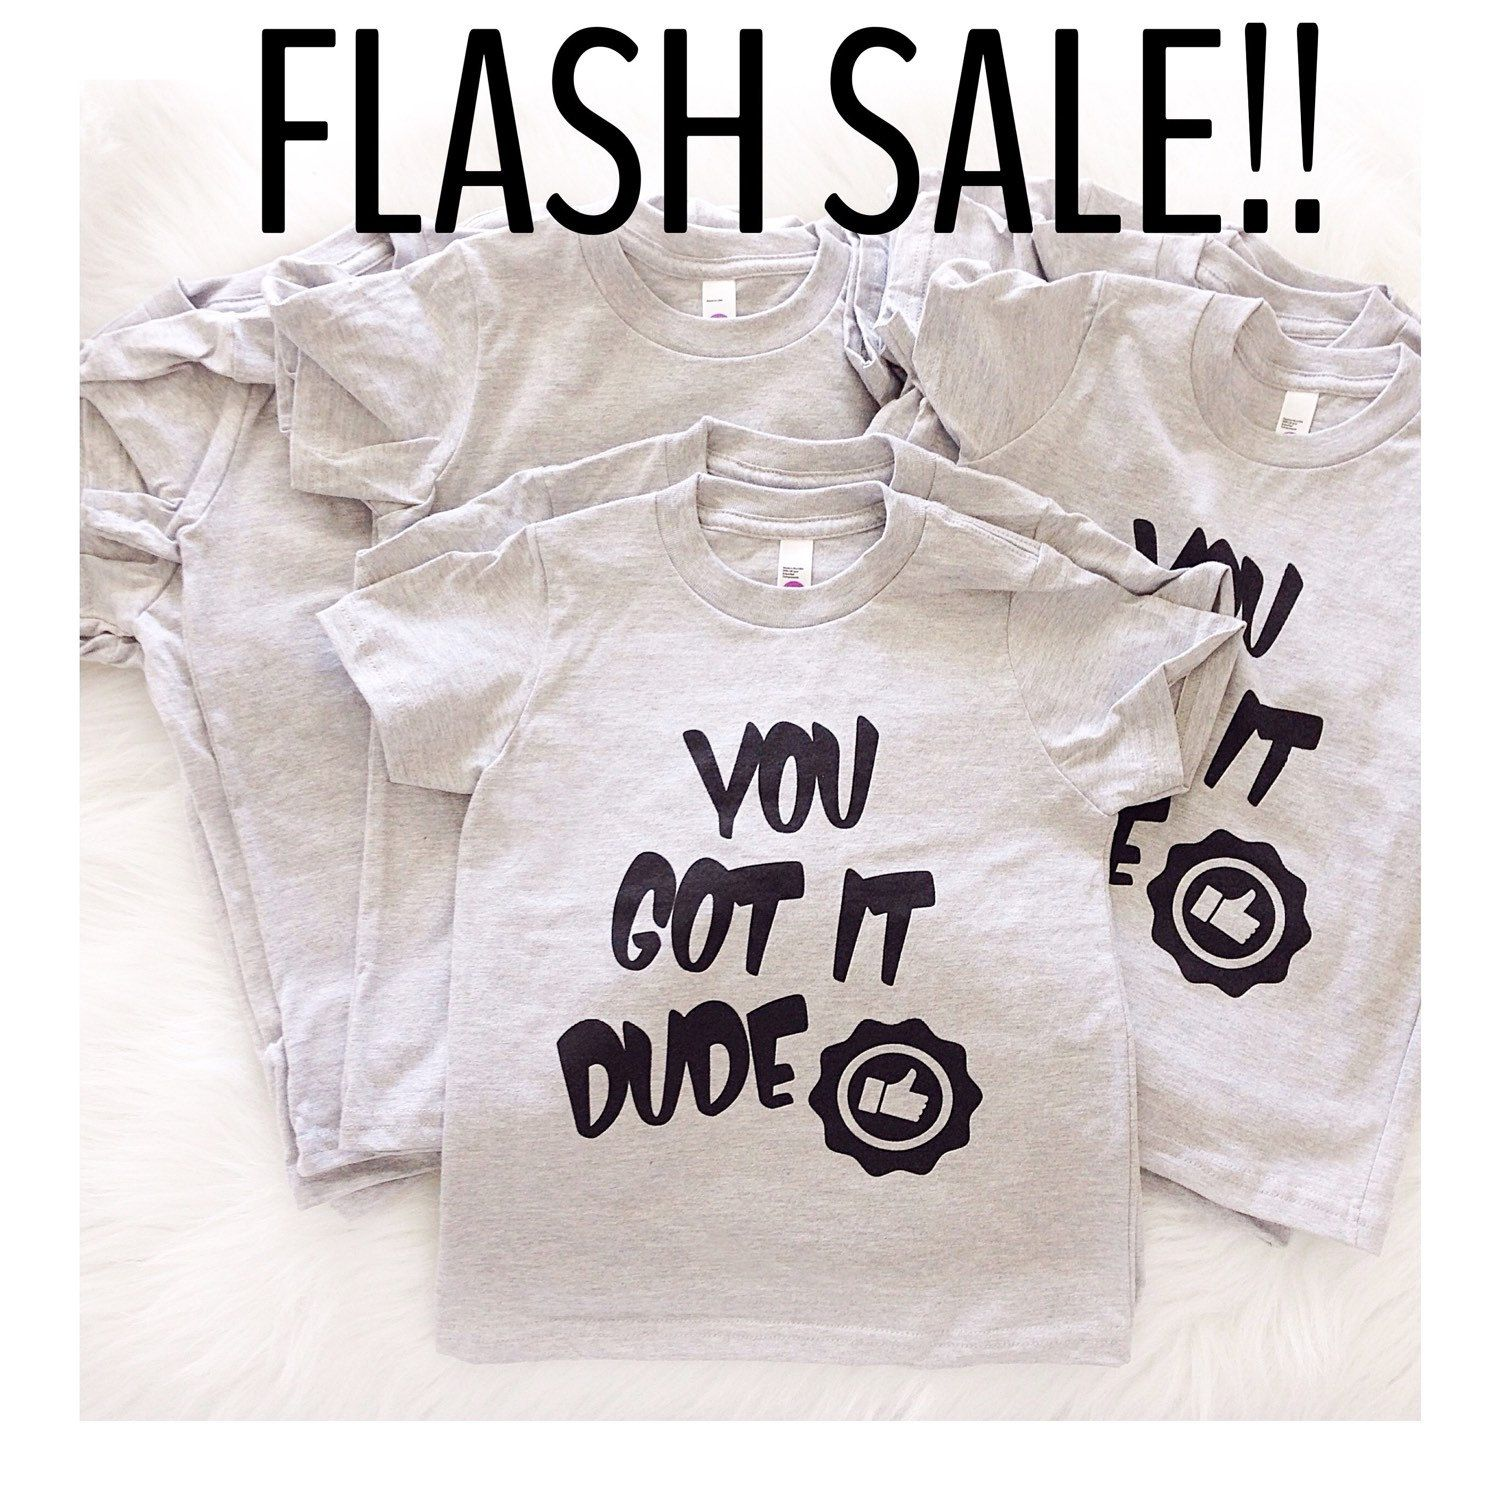 FLASH SALE!! Grab one of our You Got It Dude  tees for just $12!! Tees are Ready to Ship! Hurry deal ends soon! *no code needed, offer not valid on previous orders TAG A FRIEND WHO LOVES FULL HOUSE